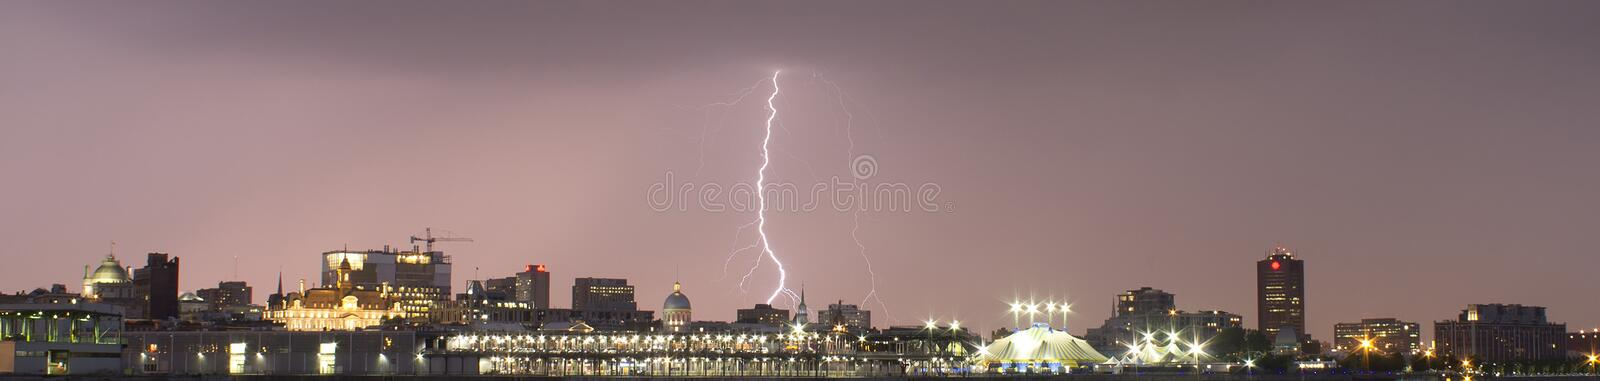 Lightning strikes royalty free stock photos